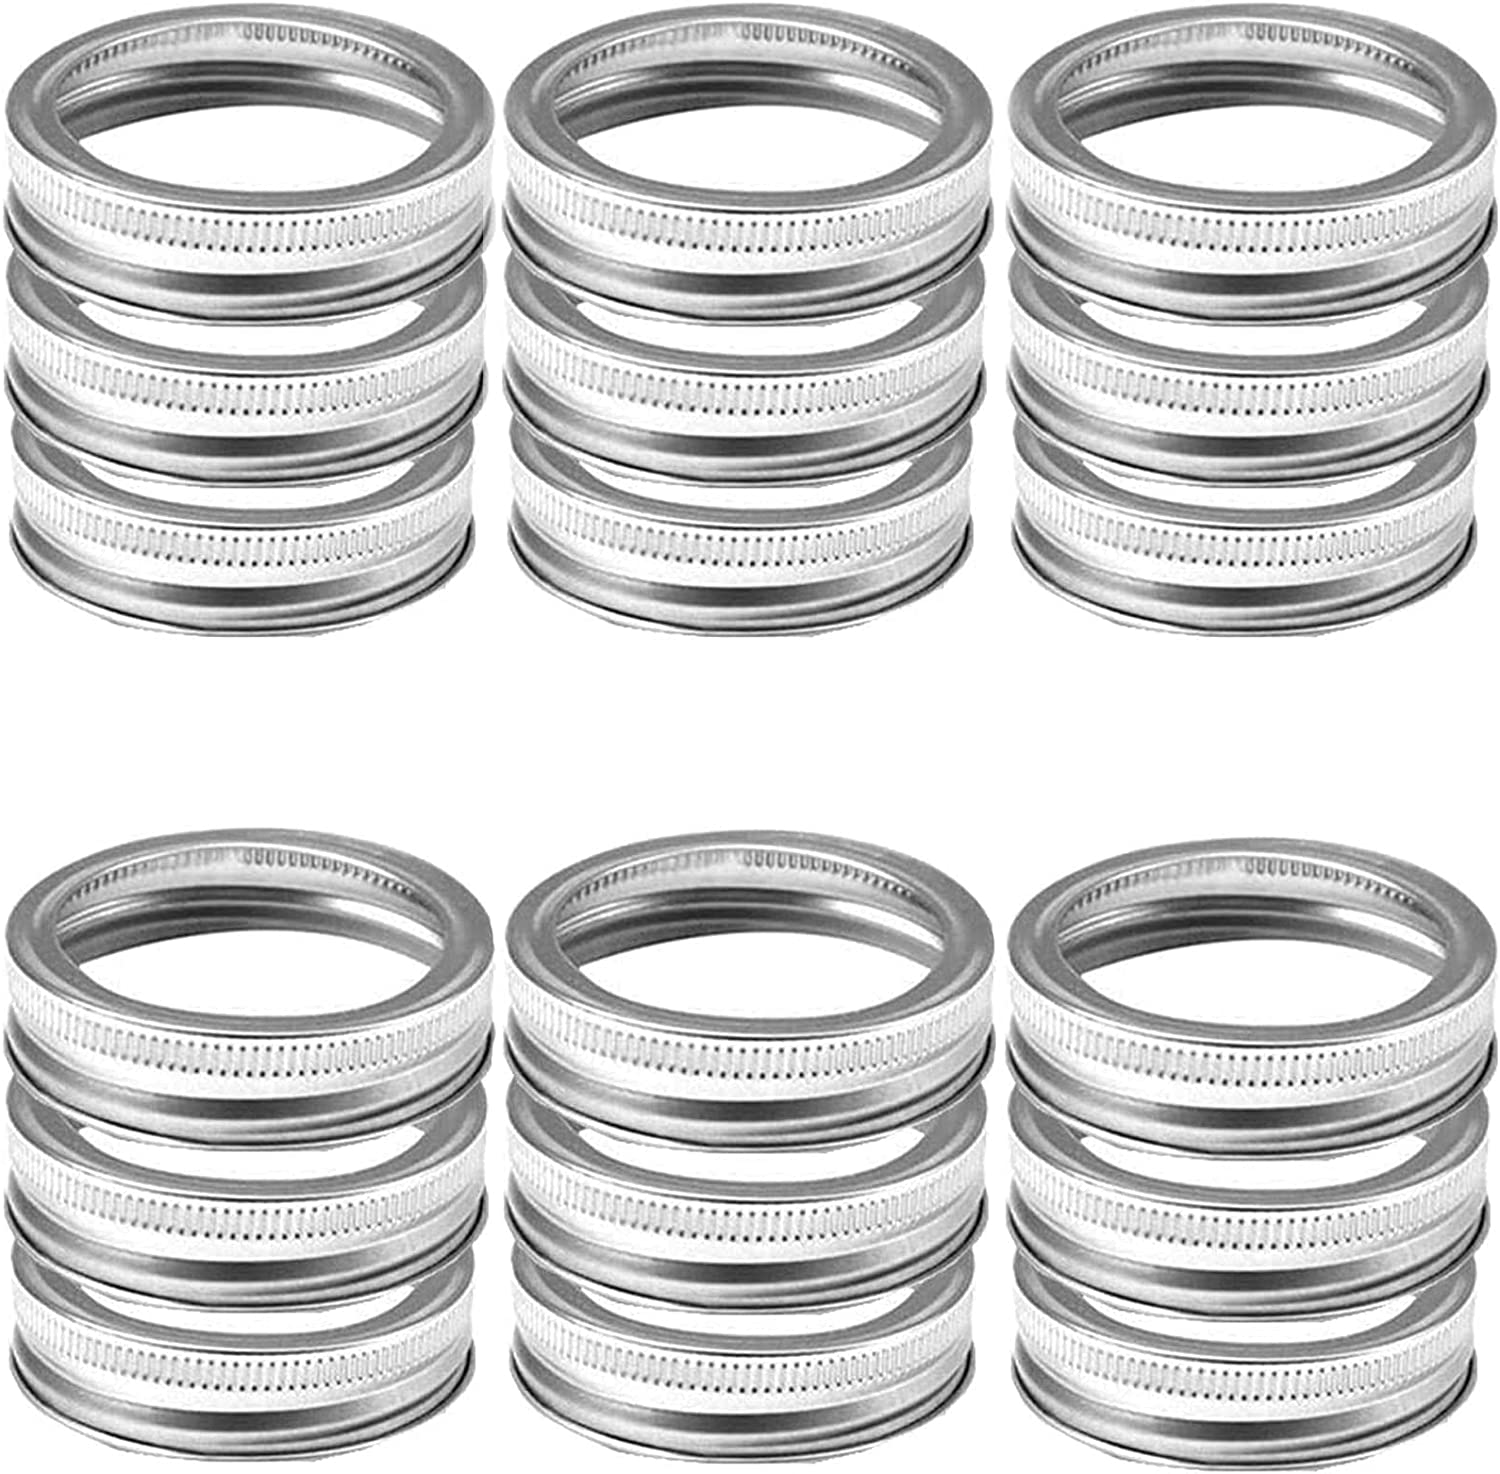 25 Pieces Canning Rings Superlatite Wide Stainless New sales Lids Mouth Mason